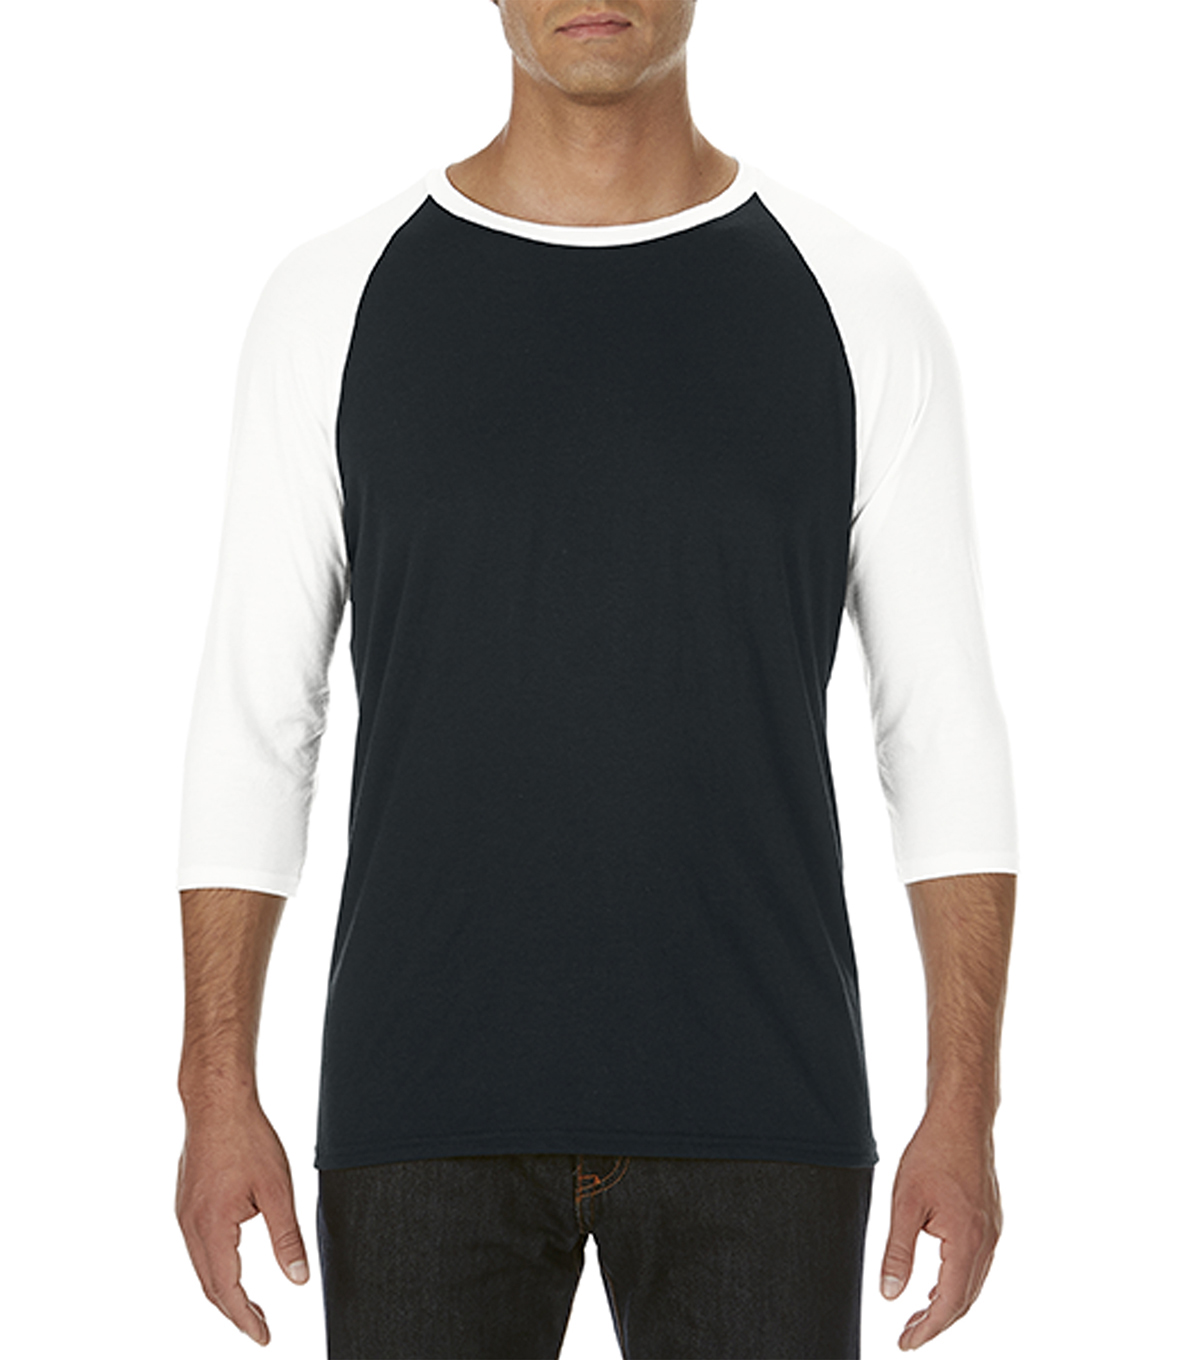 Anvil Extra Large Adult Raglan Shirt, Black/white